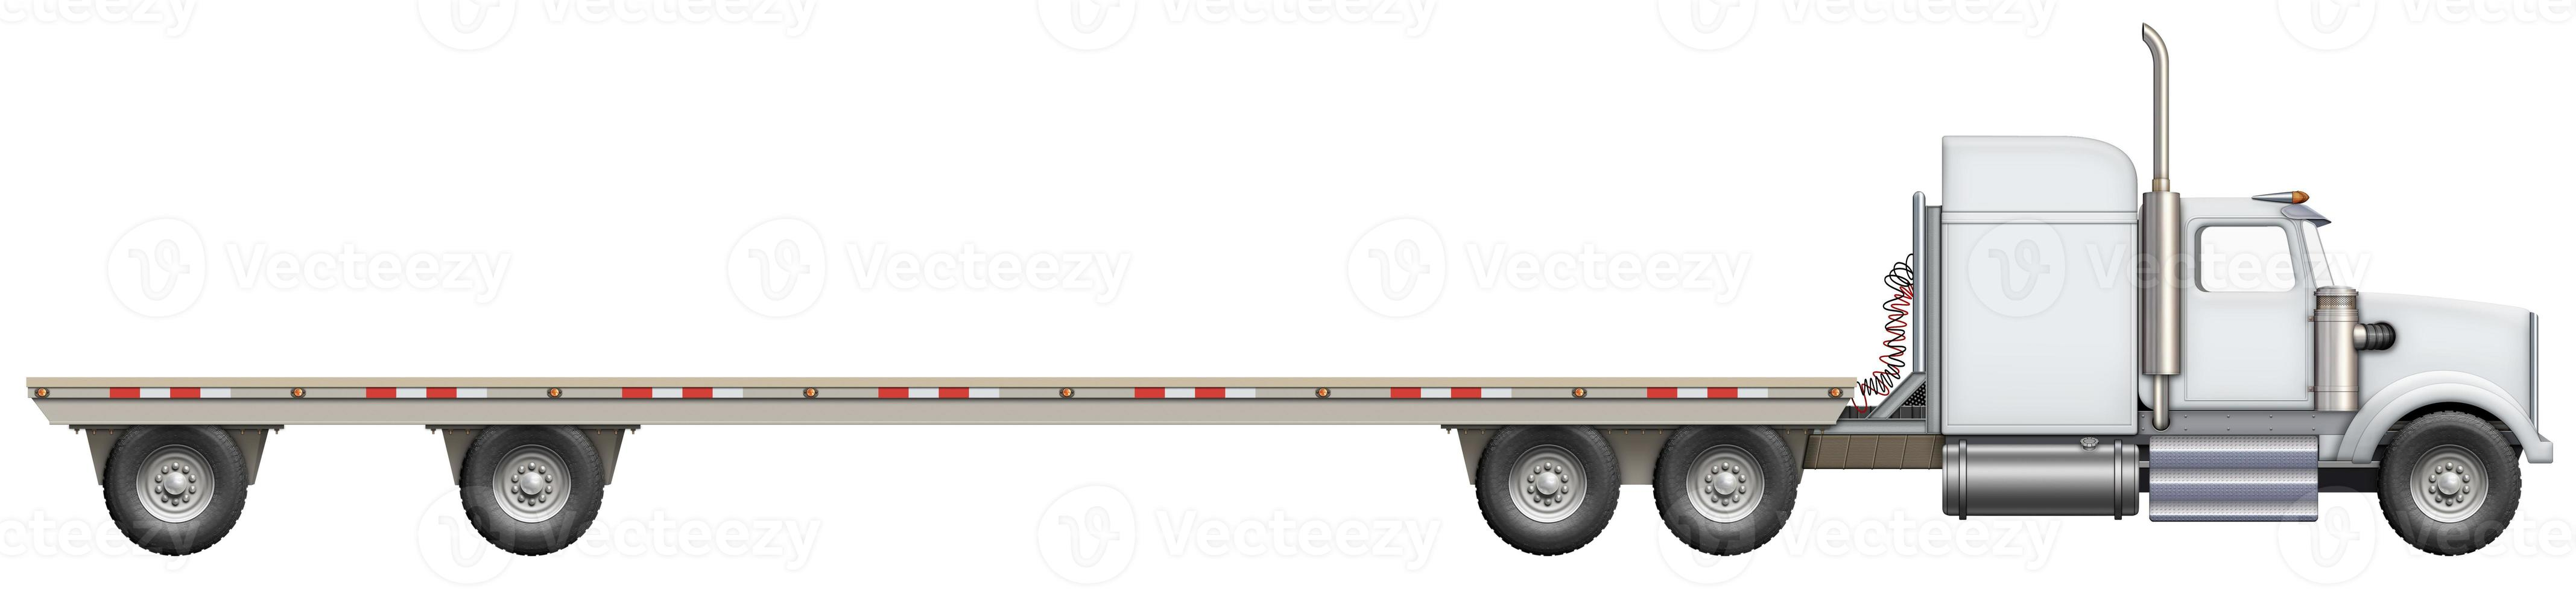 Flatbed Truck photo